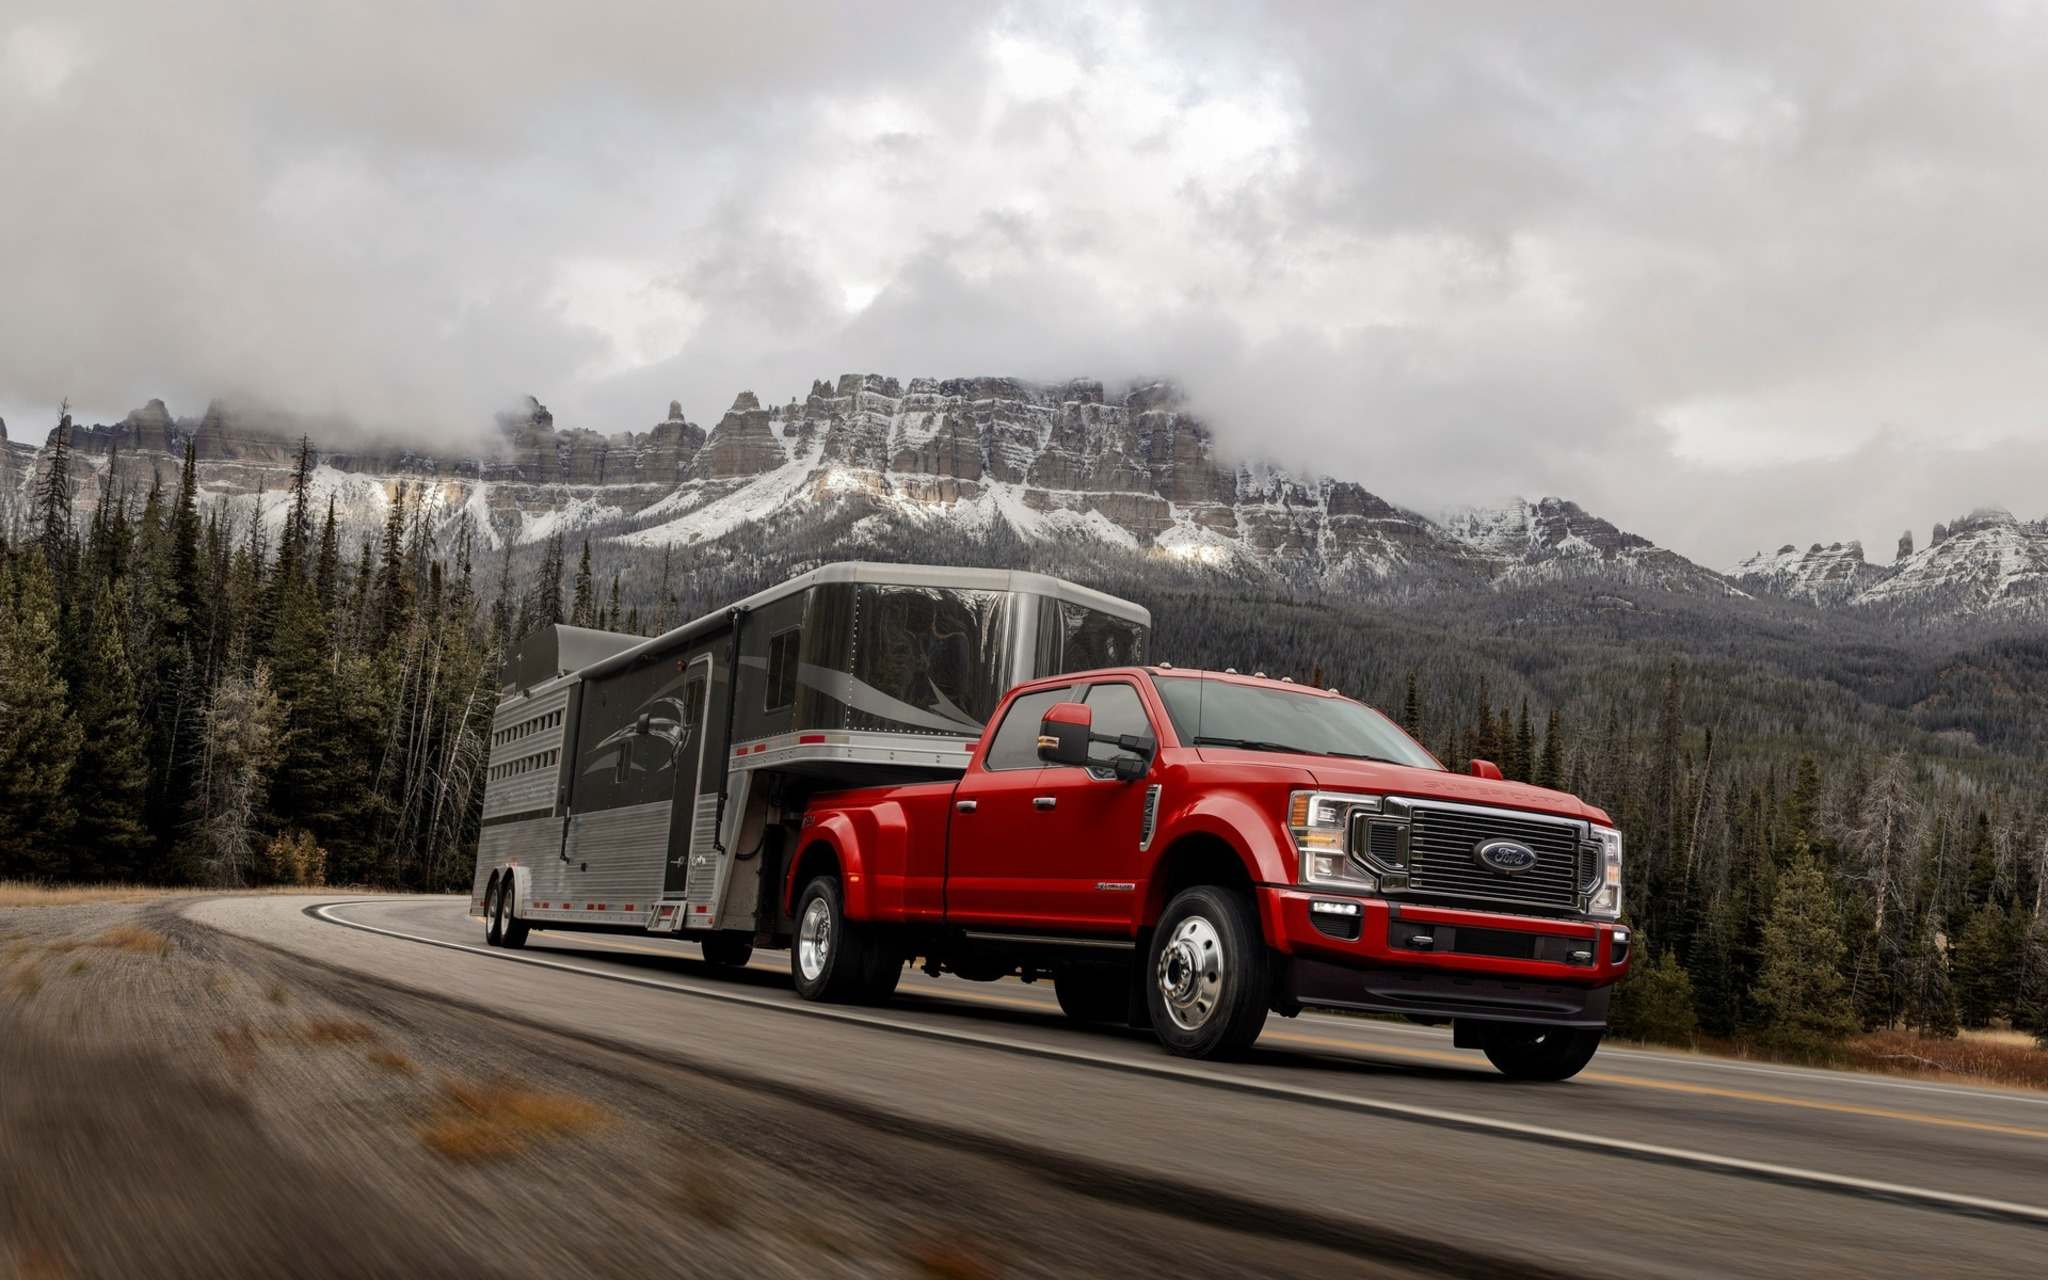 FordThe new Super Duty will be available in the North American market this fall, with what Ford claims will be the sturdiest V-8 engine in the segment.